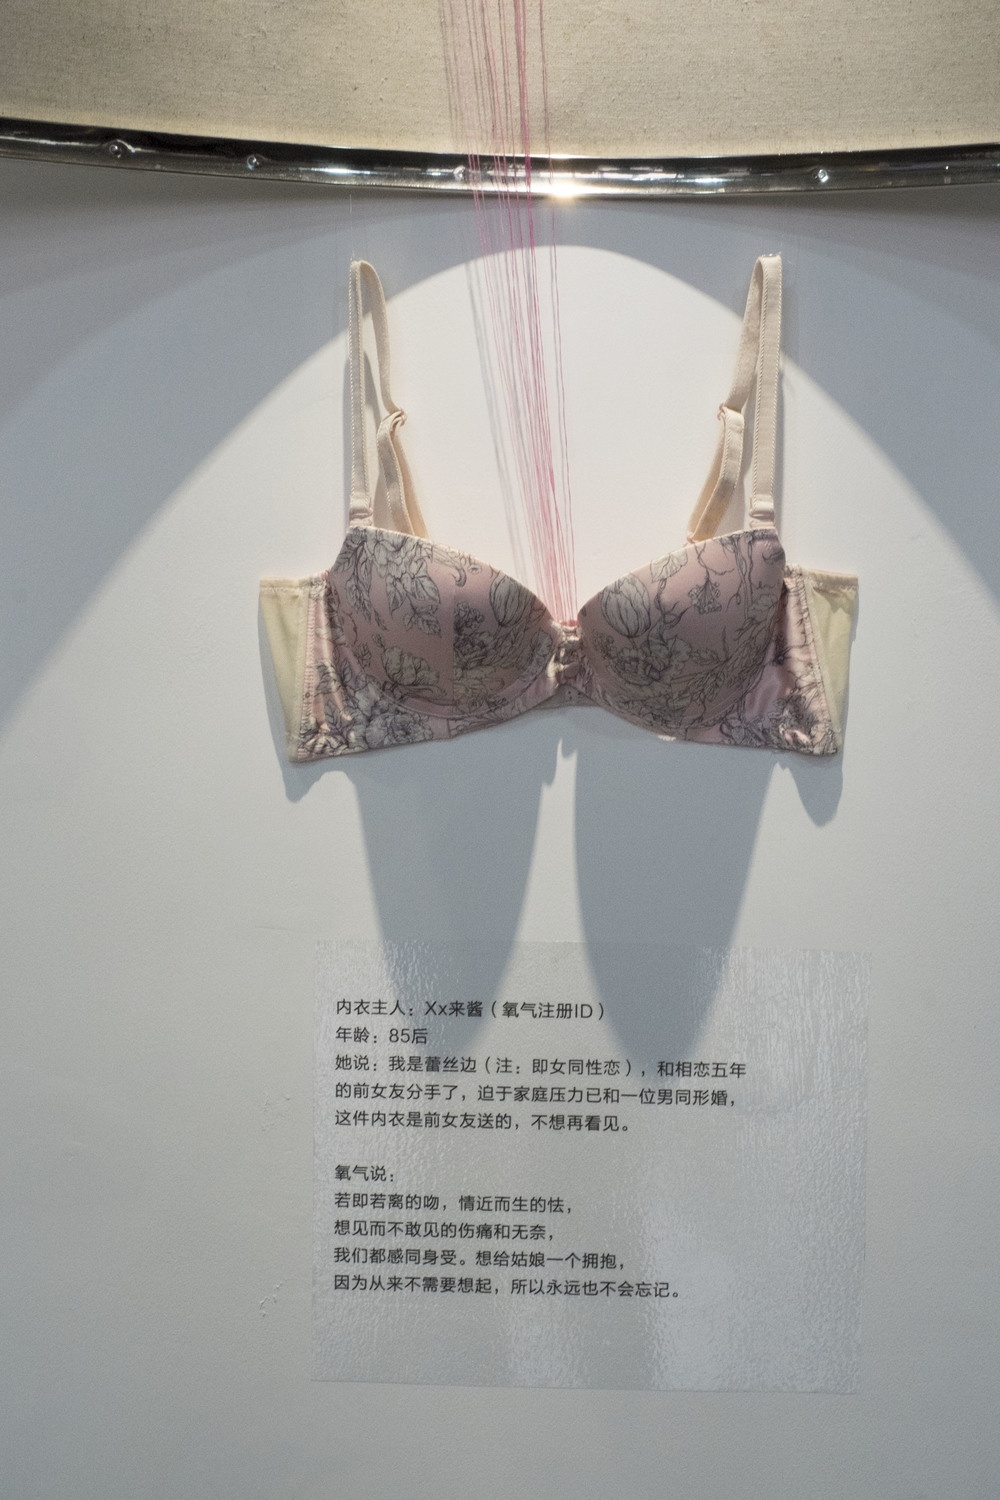 edited_bra_display.jpg